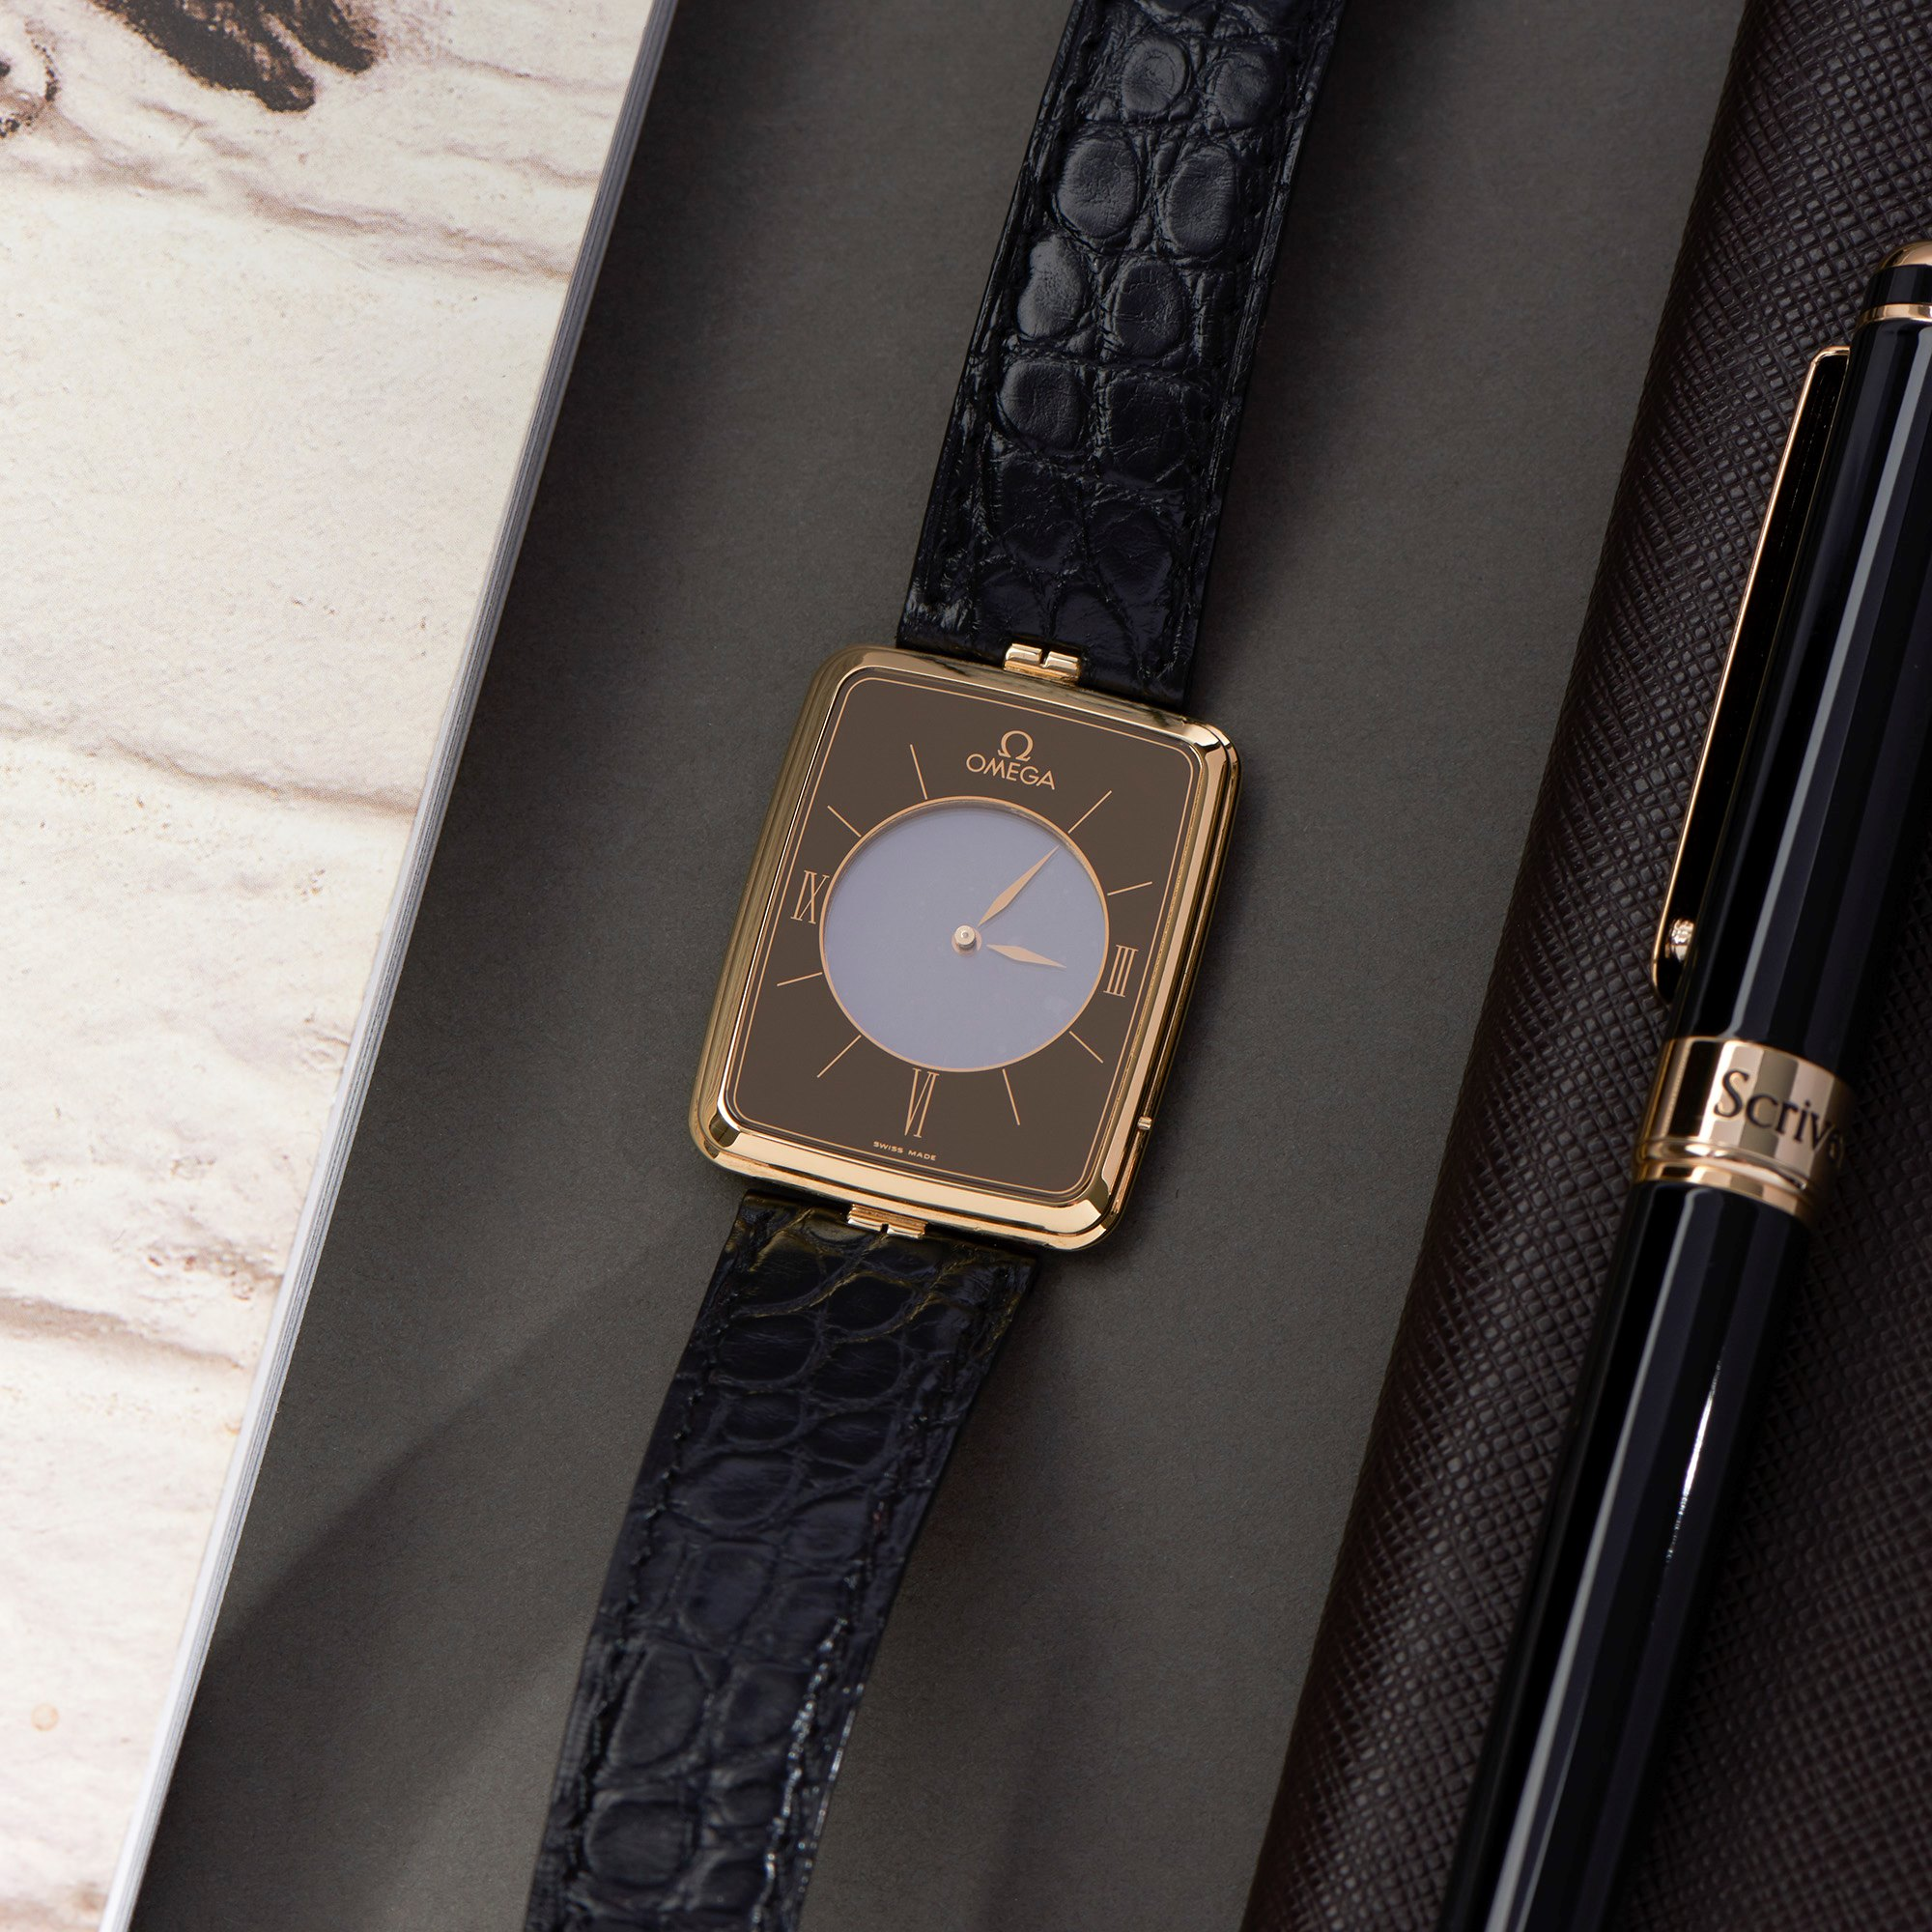 Omega La Magique Scarface 18K Yellow Gold - 191.8523Z Yellow Gold 191.8523Z